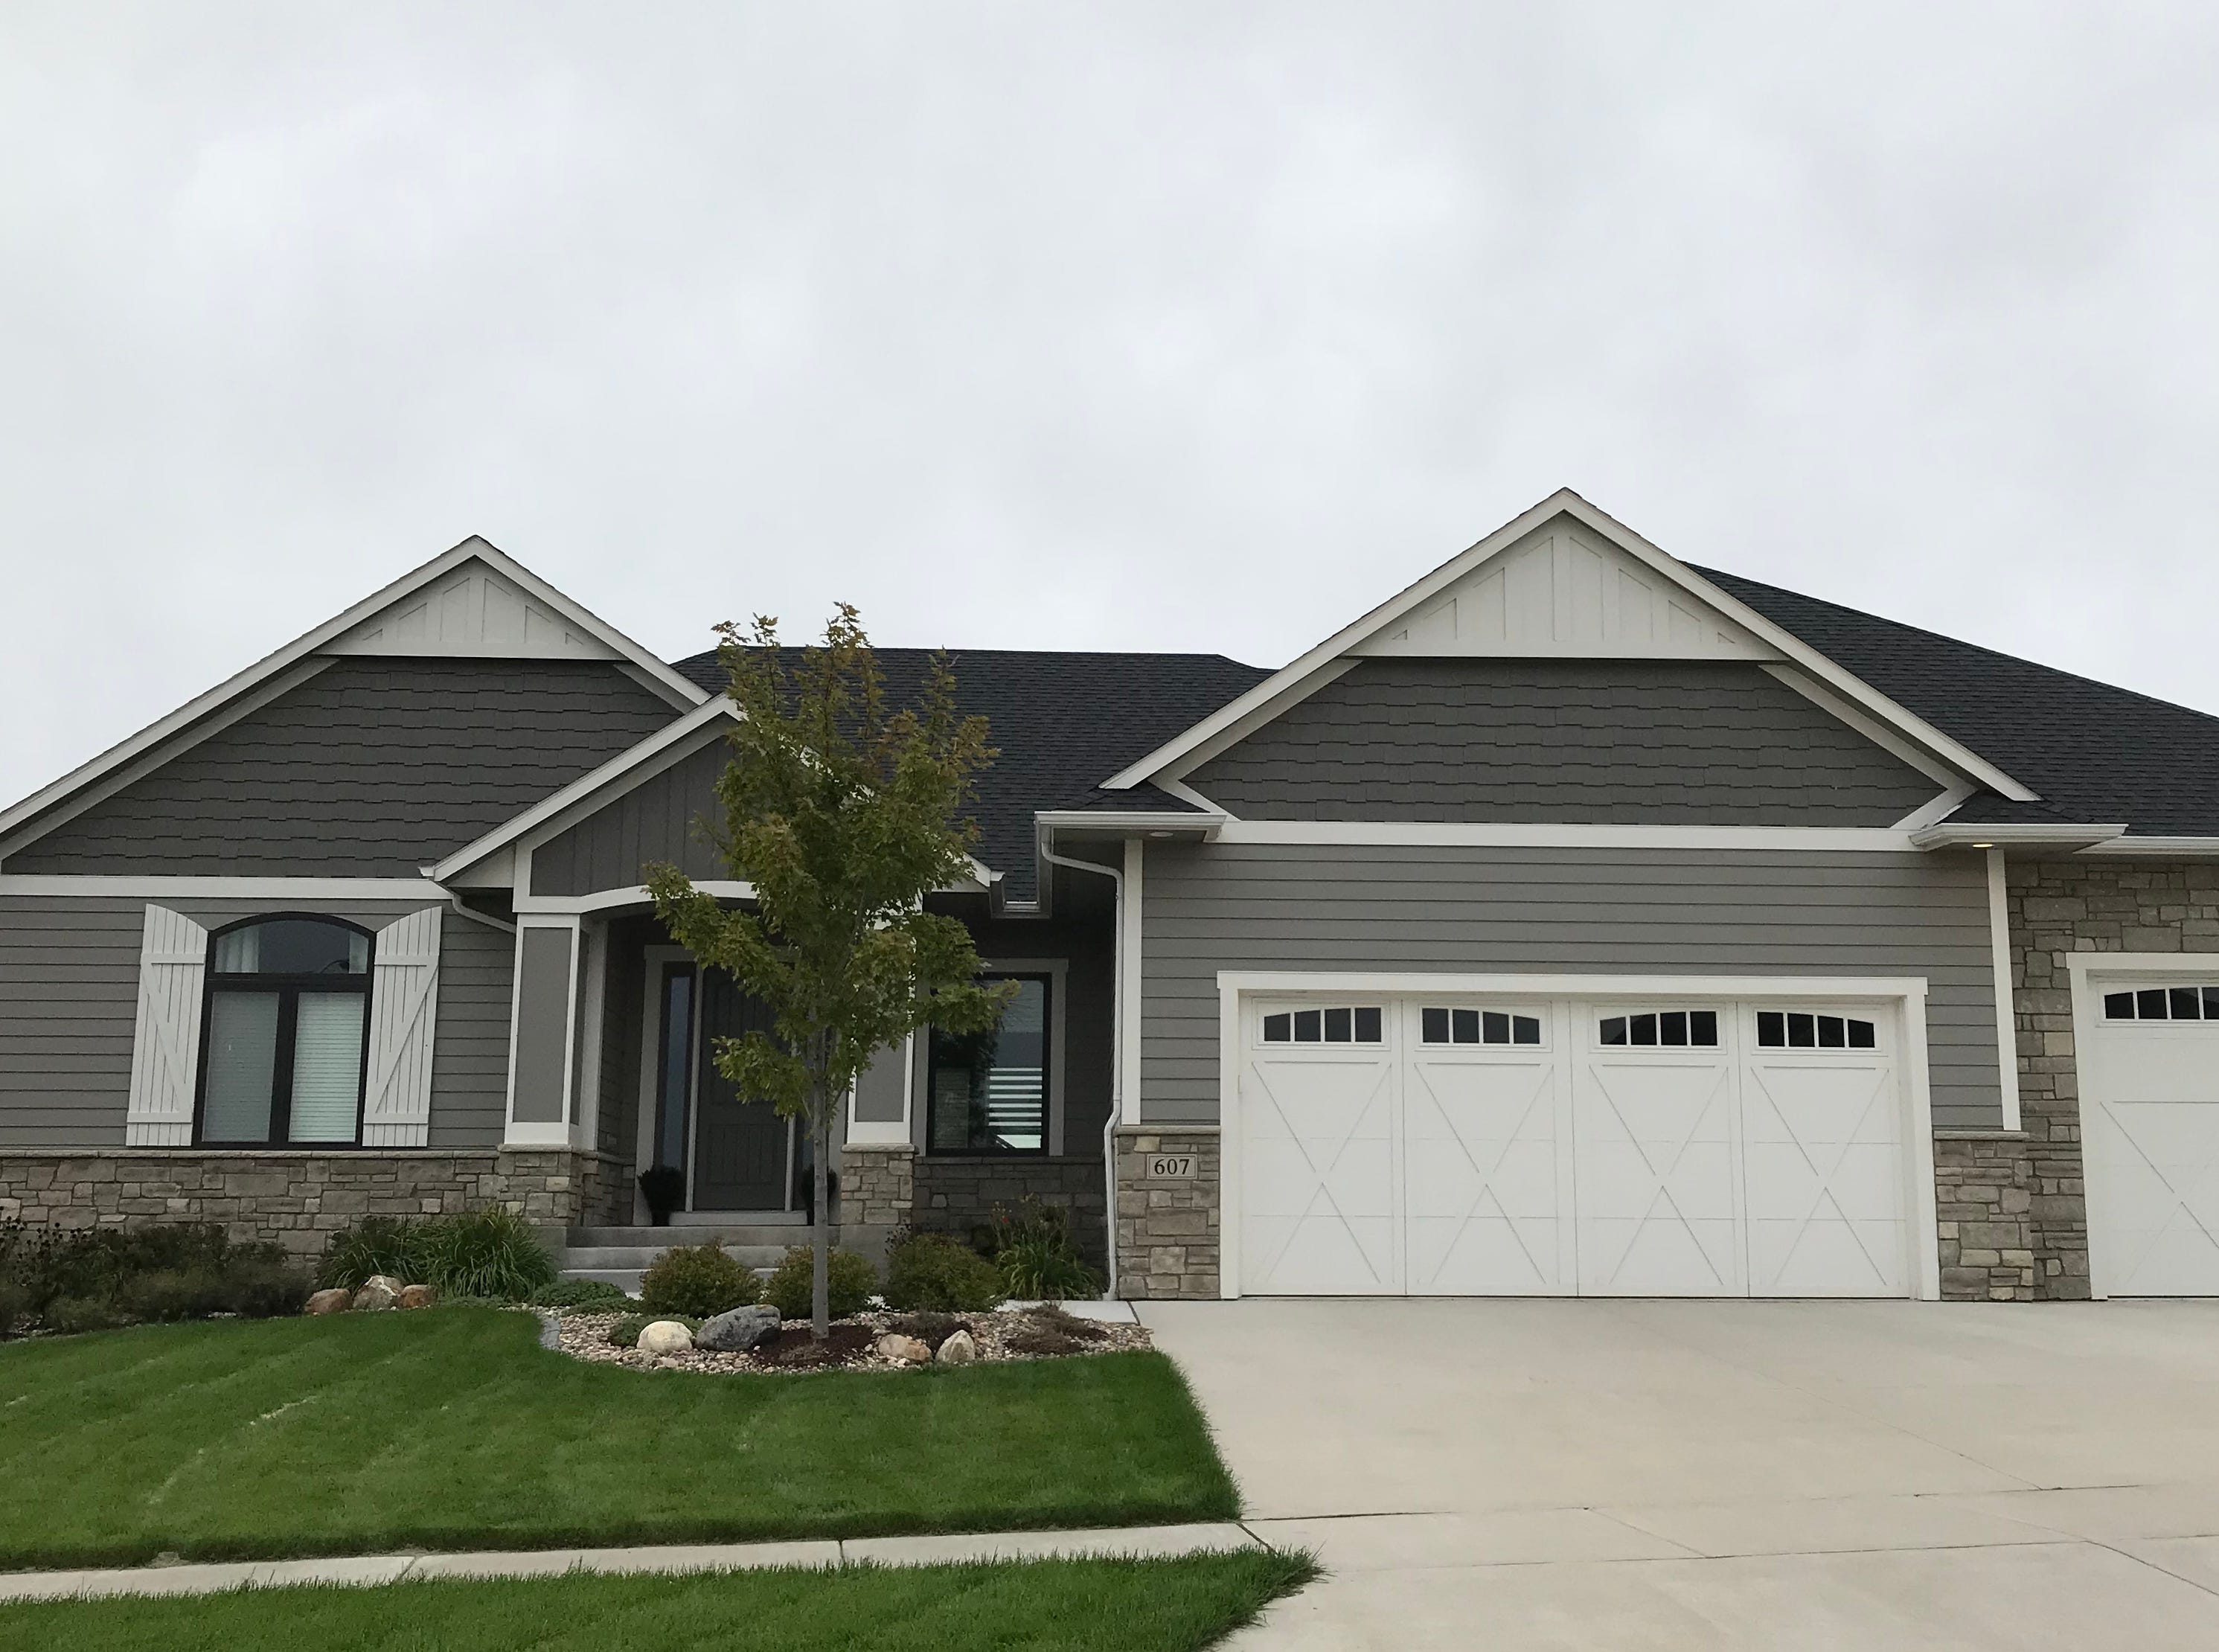 This five-bedroom ranch-style home at 607 S. Torrey Pine Lane near Willow Run Golf Course sold for $675,000, according to Minnehaha County public records, topping home sales for the week ending July 13.